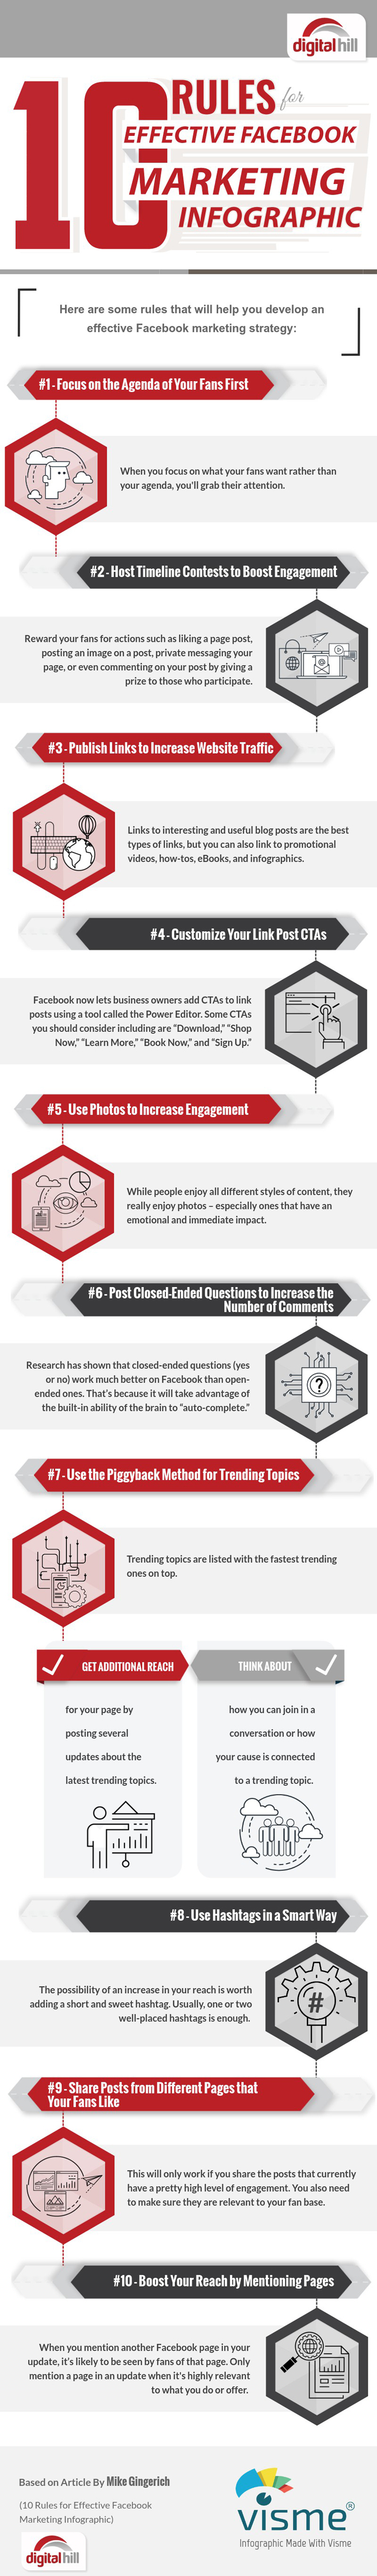 10 Rules for Effective Facebook Marketing Infographic Small Size